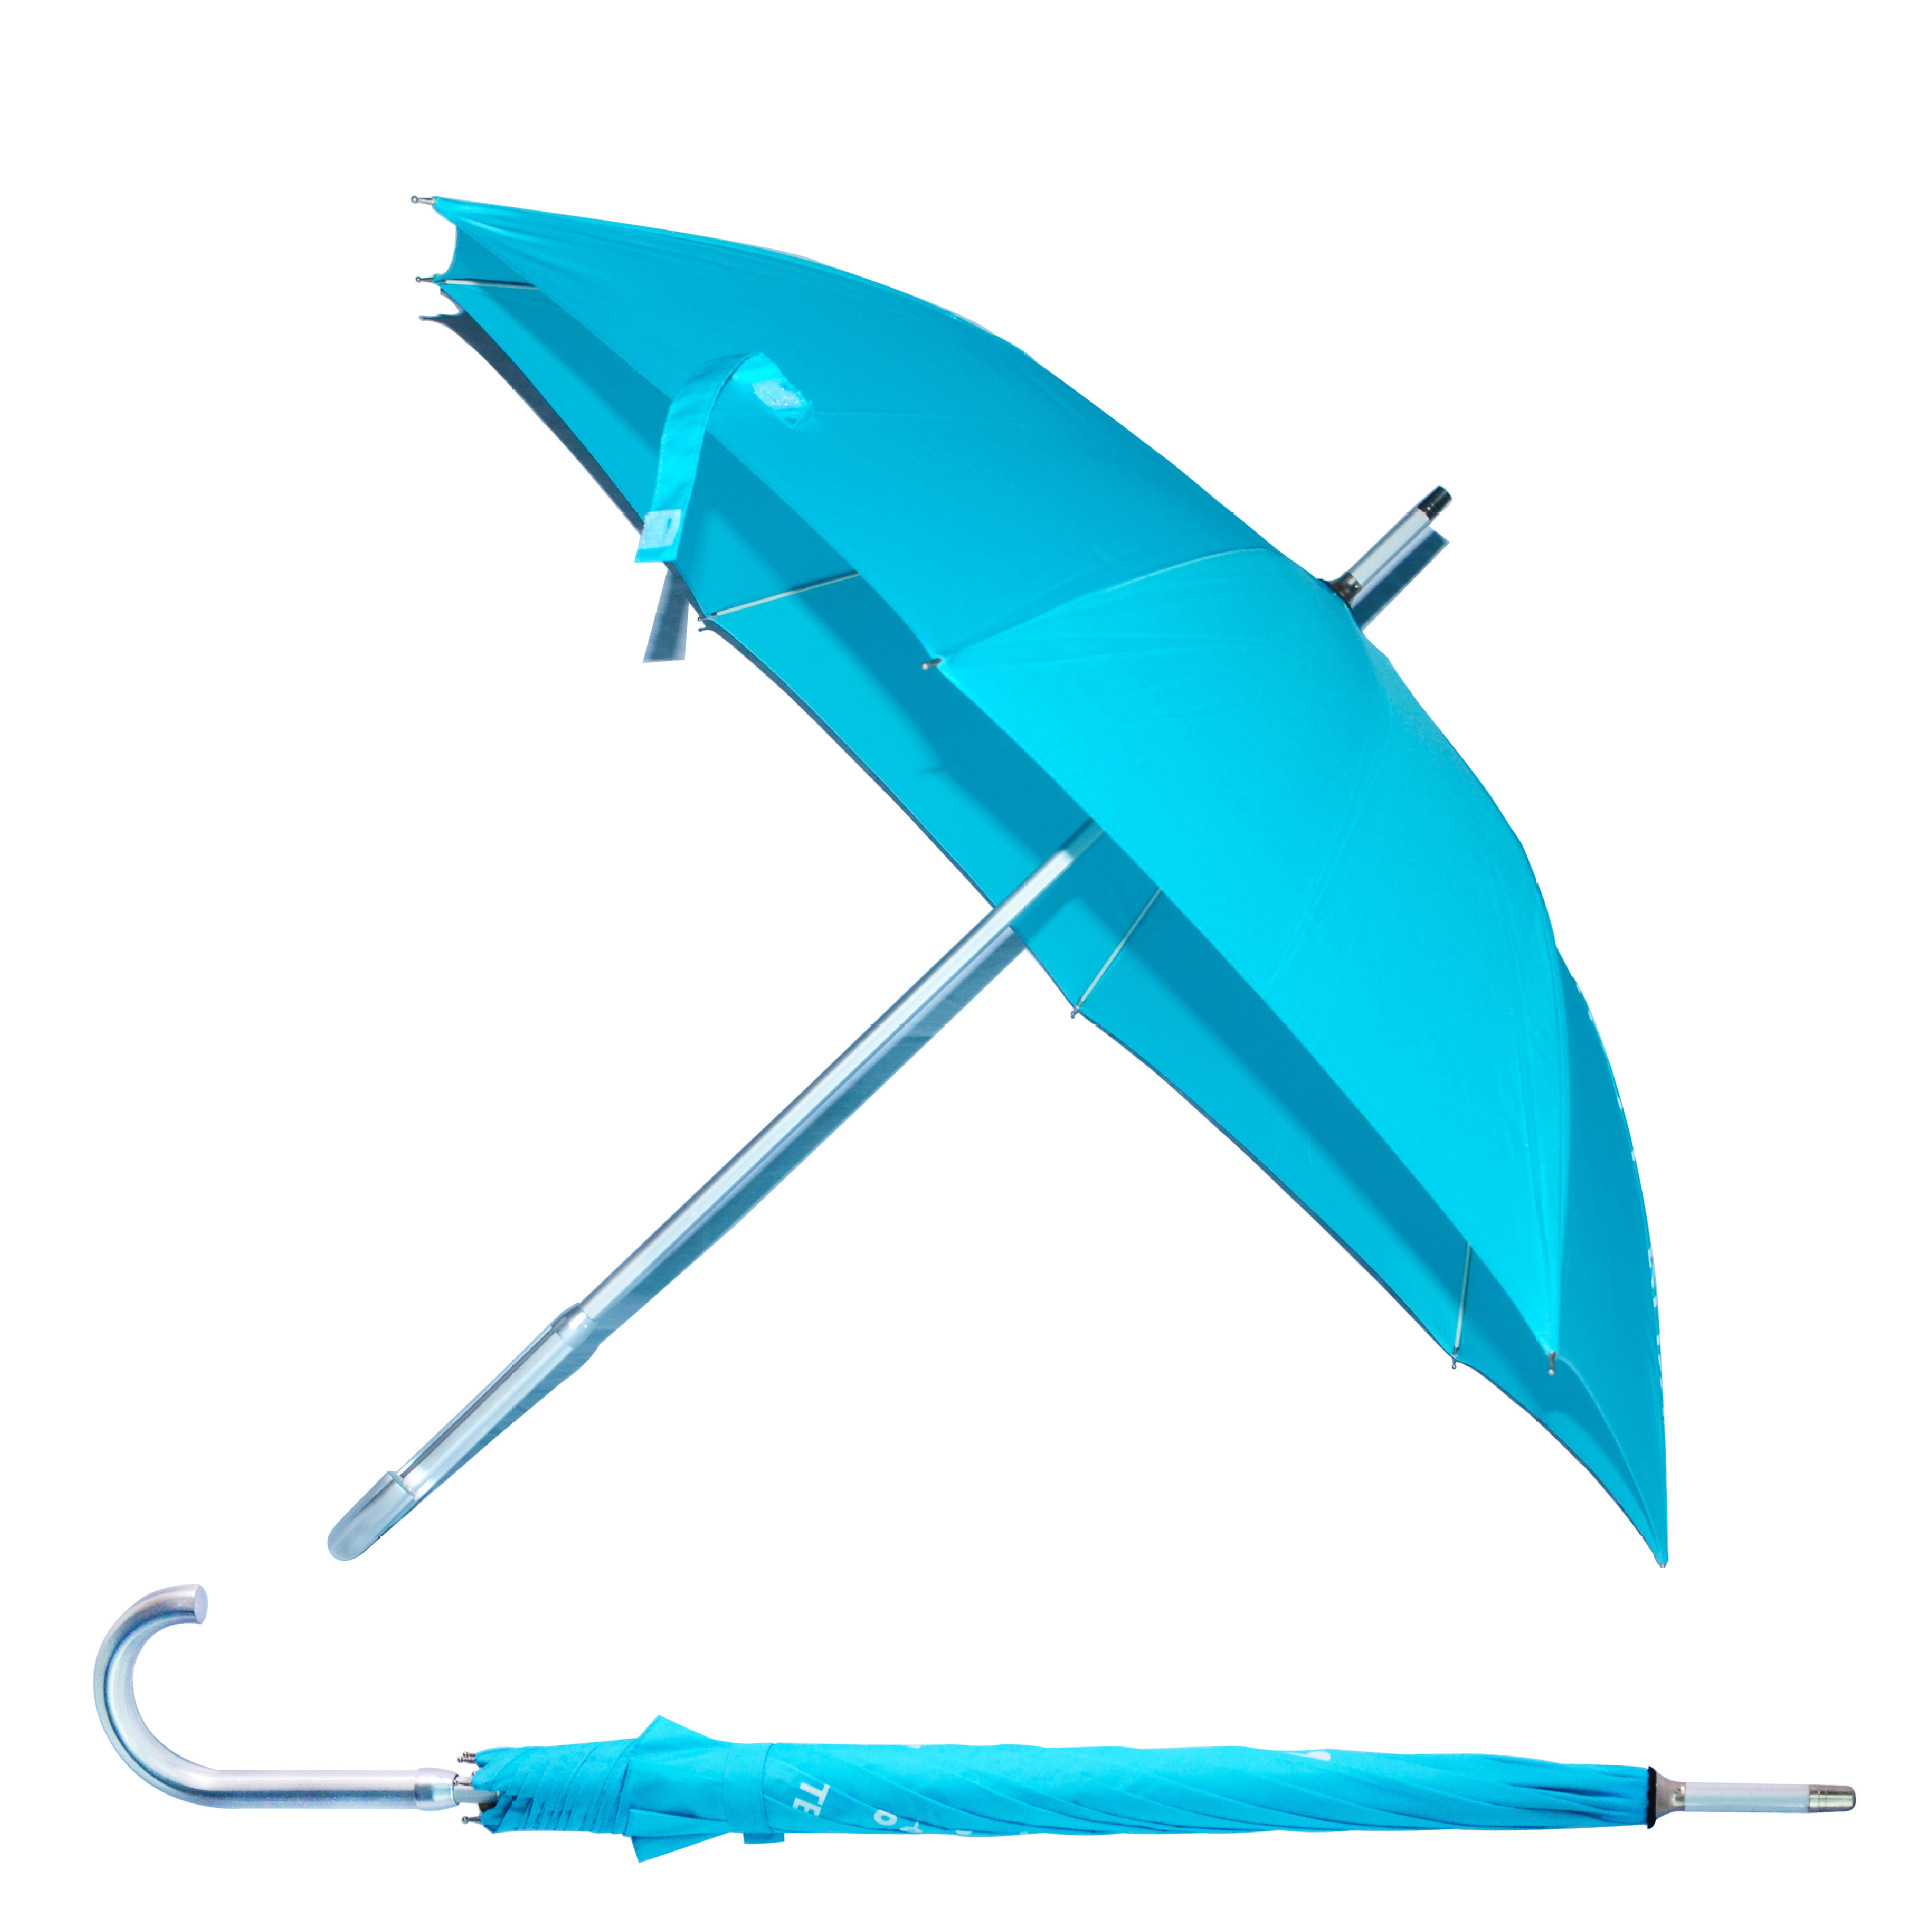 Creative All-Weather Umbrella Long Handle Advertising Umbrella Customizable 8 Bone Parasol Can Be Printed Logo Promotional Gift